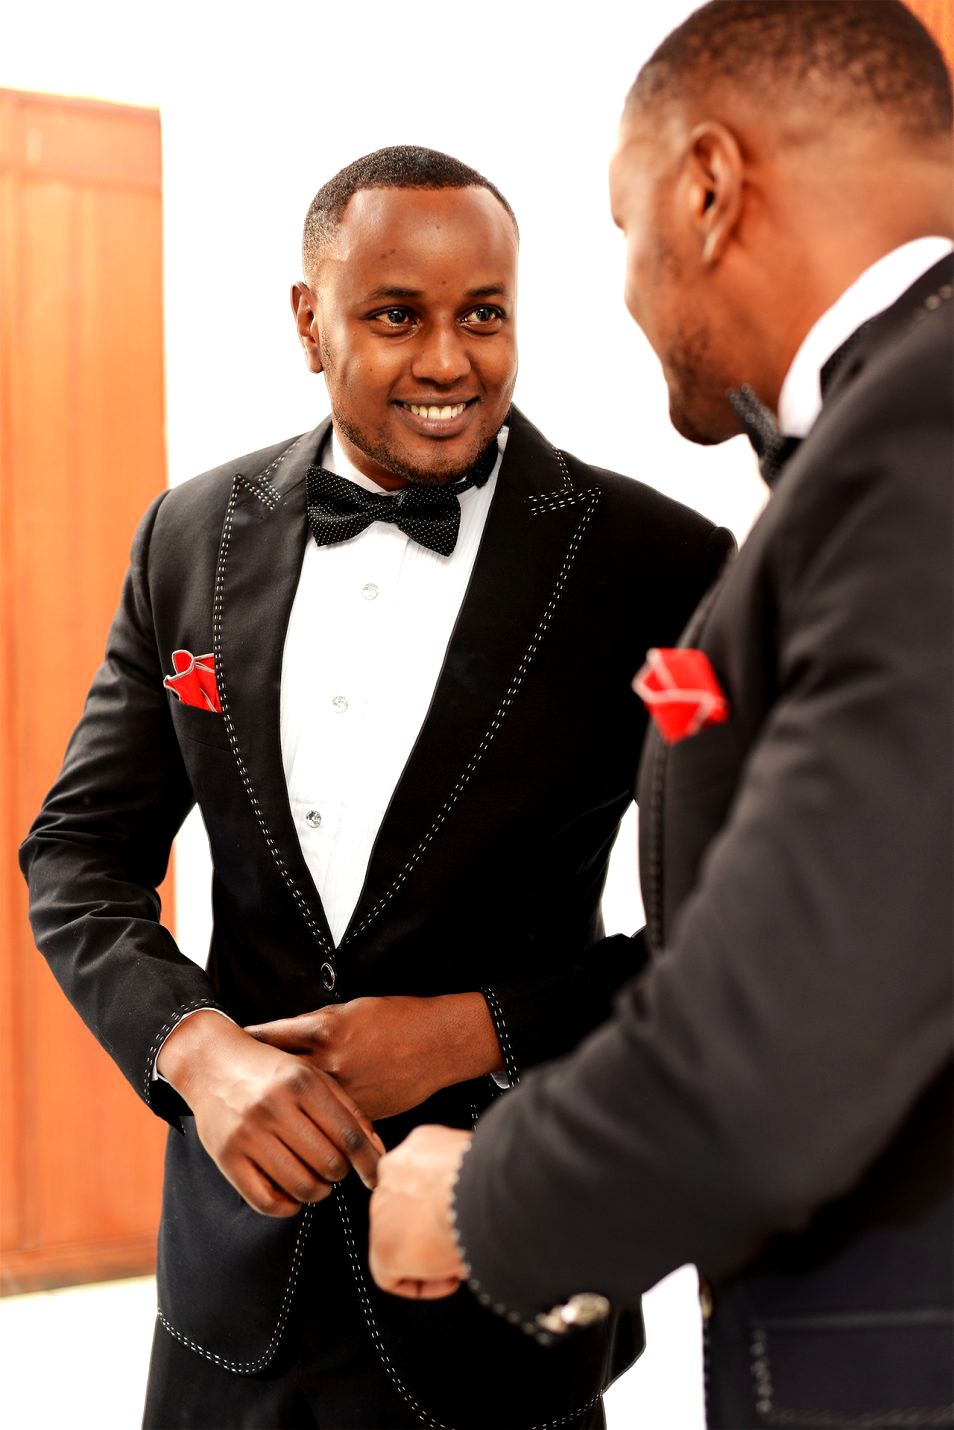 Black suits for award ceremony in Nairobi Kenya gala dinner suit